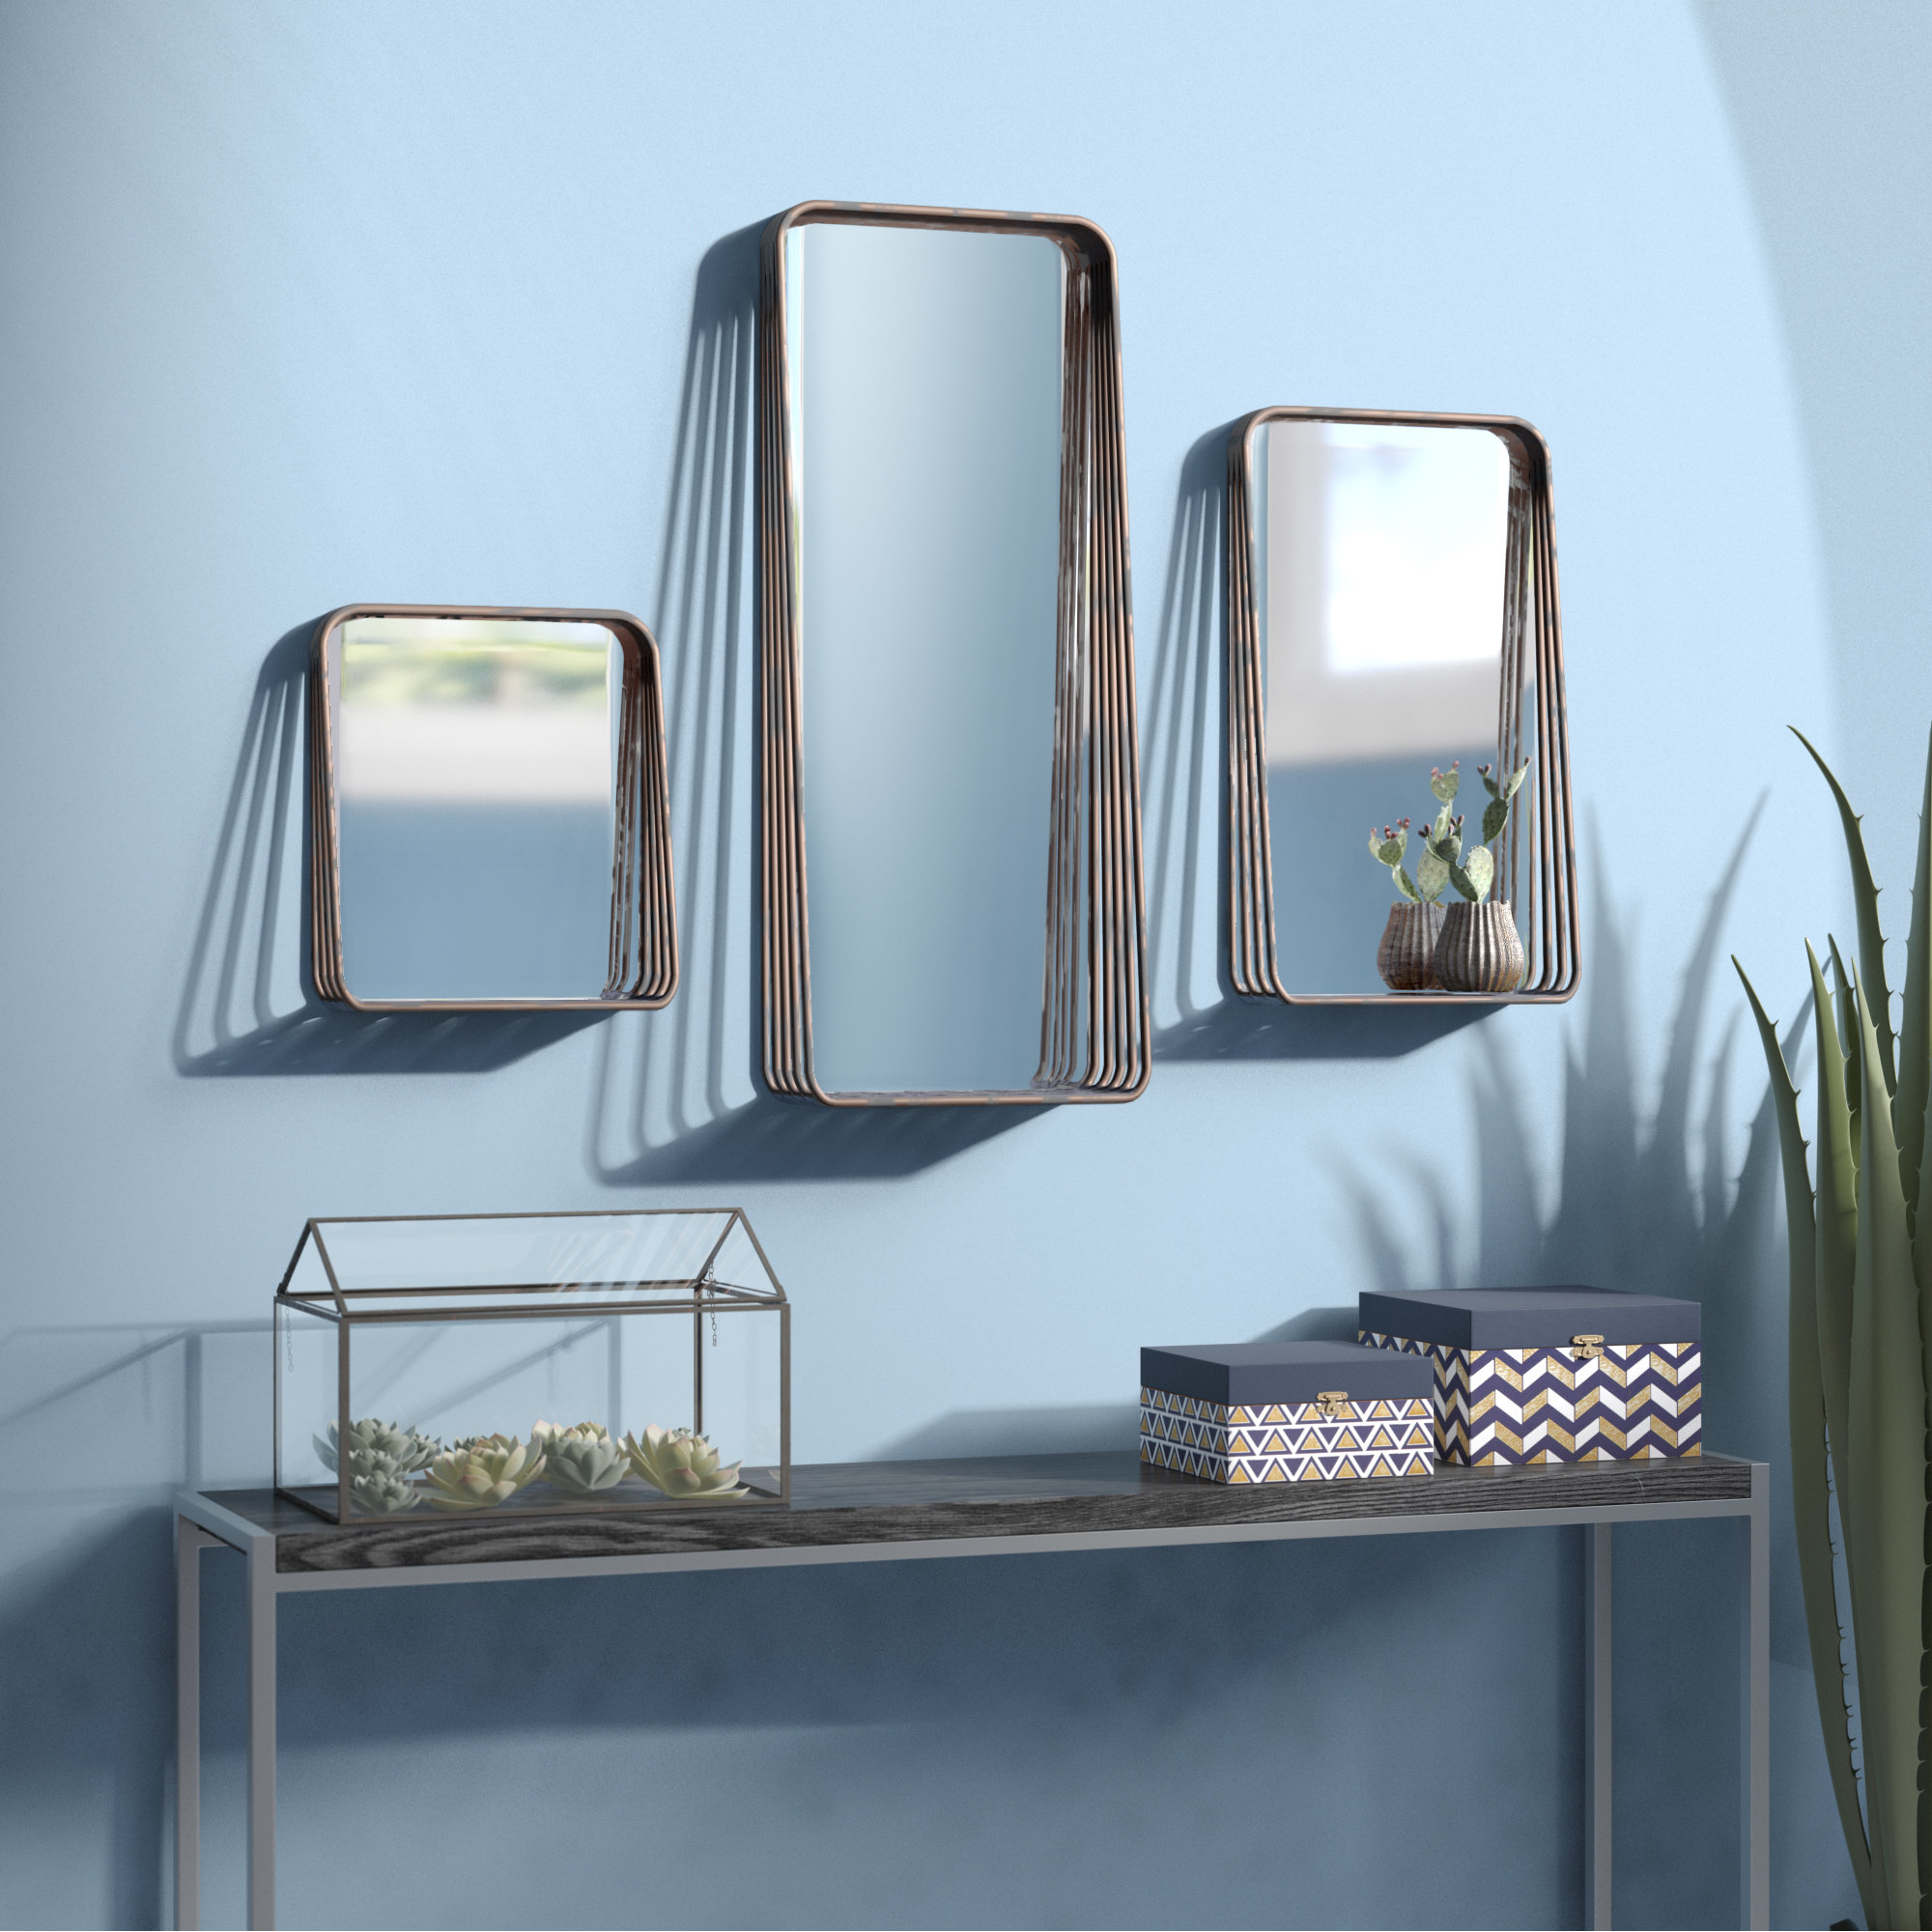 Wrought Studio Eide 3 Piece Tall Metal Framed Mirror Set & Reviews Inside Most Up To Date 3 Piece Wall Decor Sets By Wrought Studio (View 13 of 20)